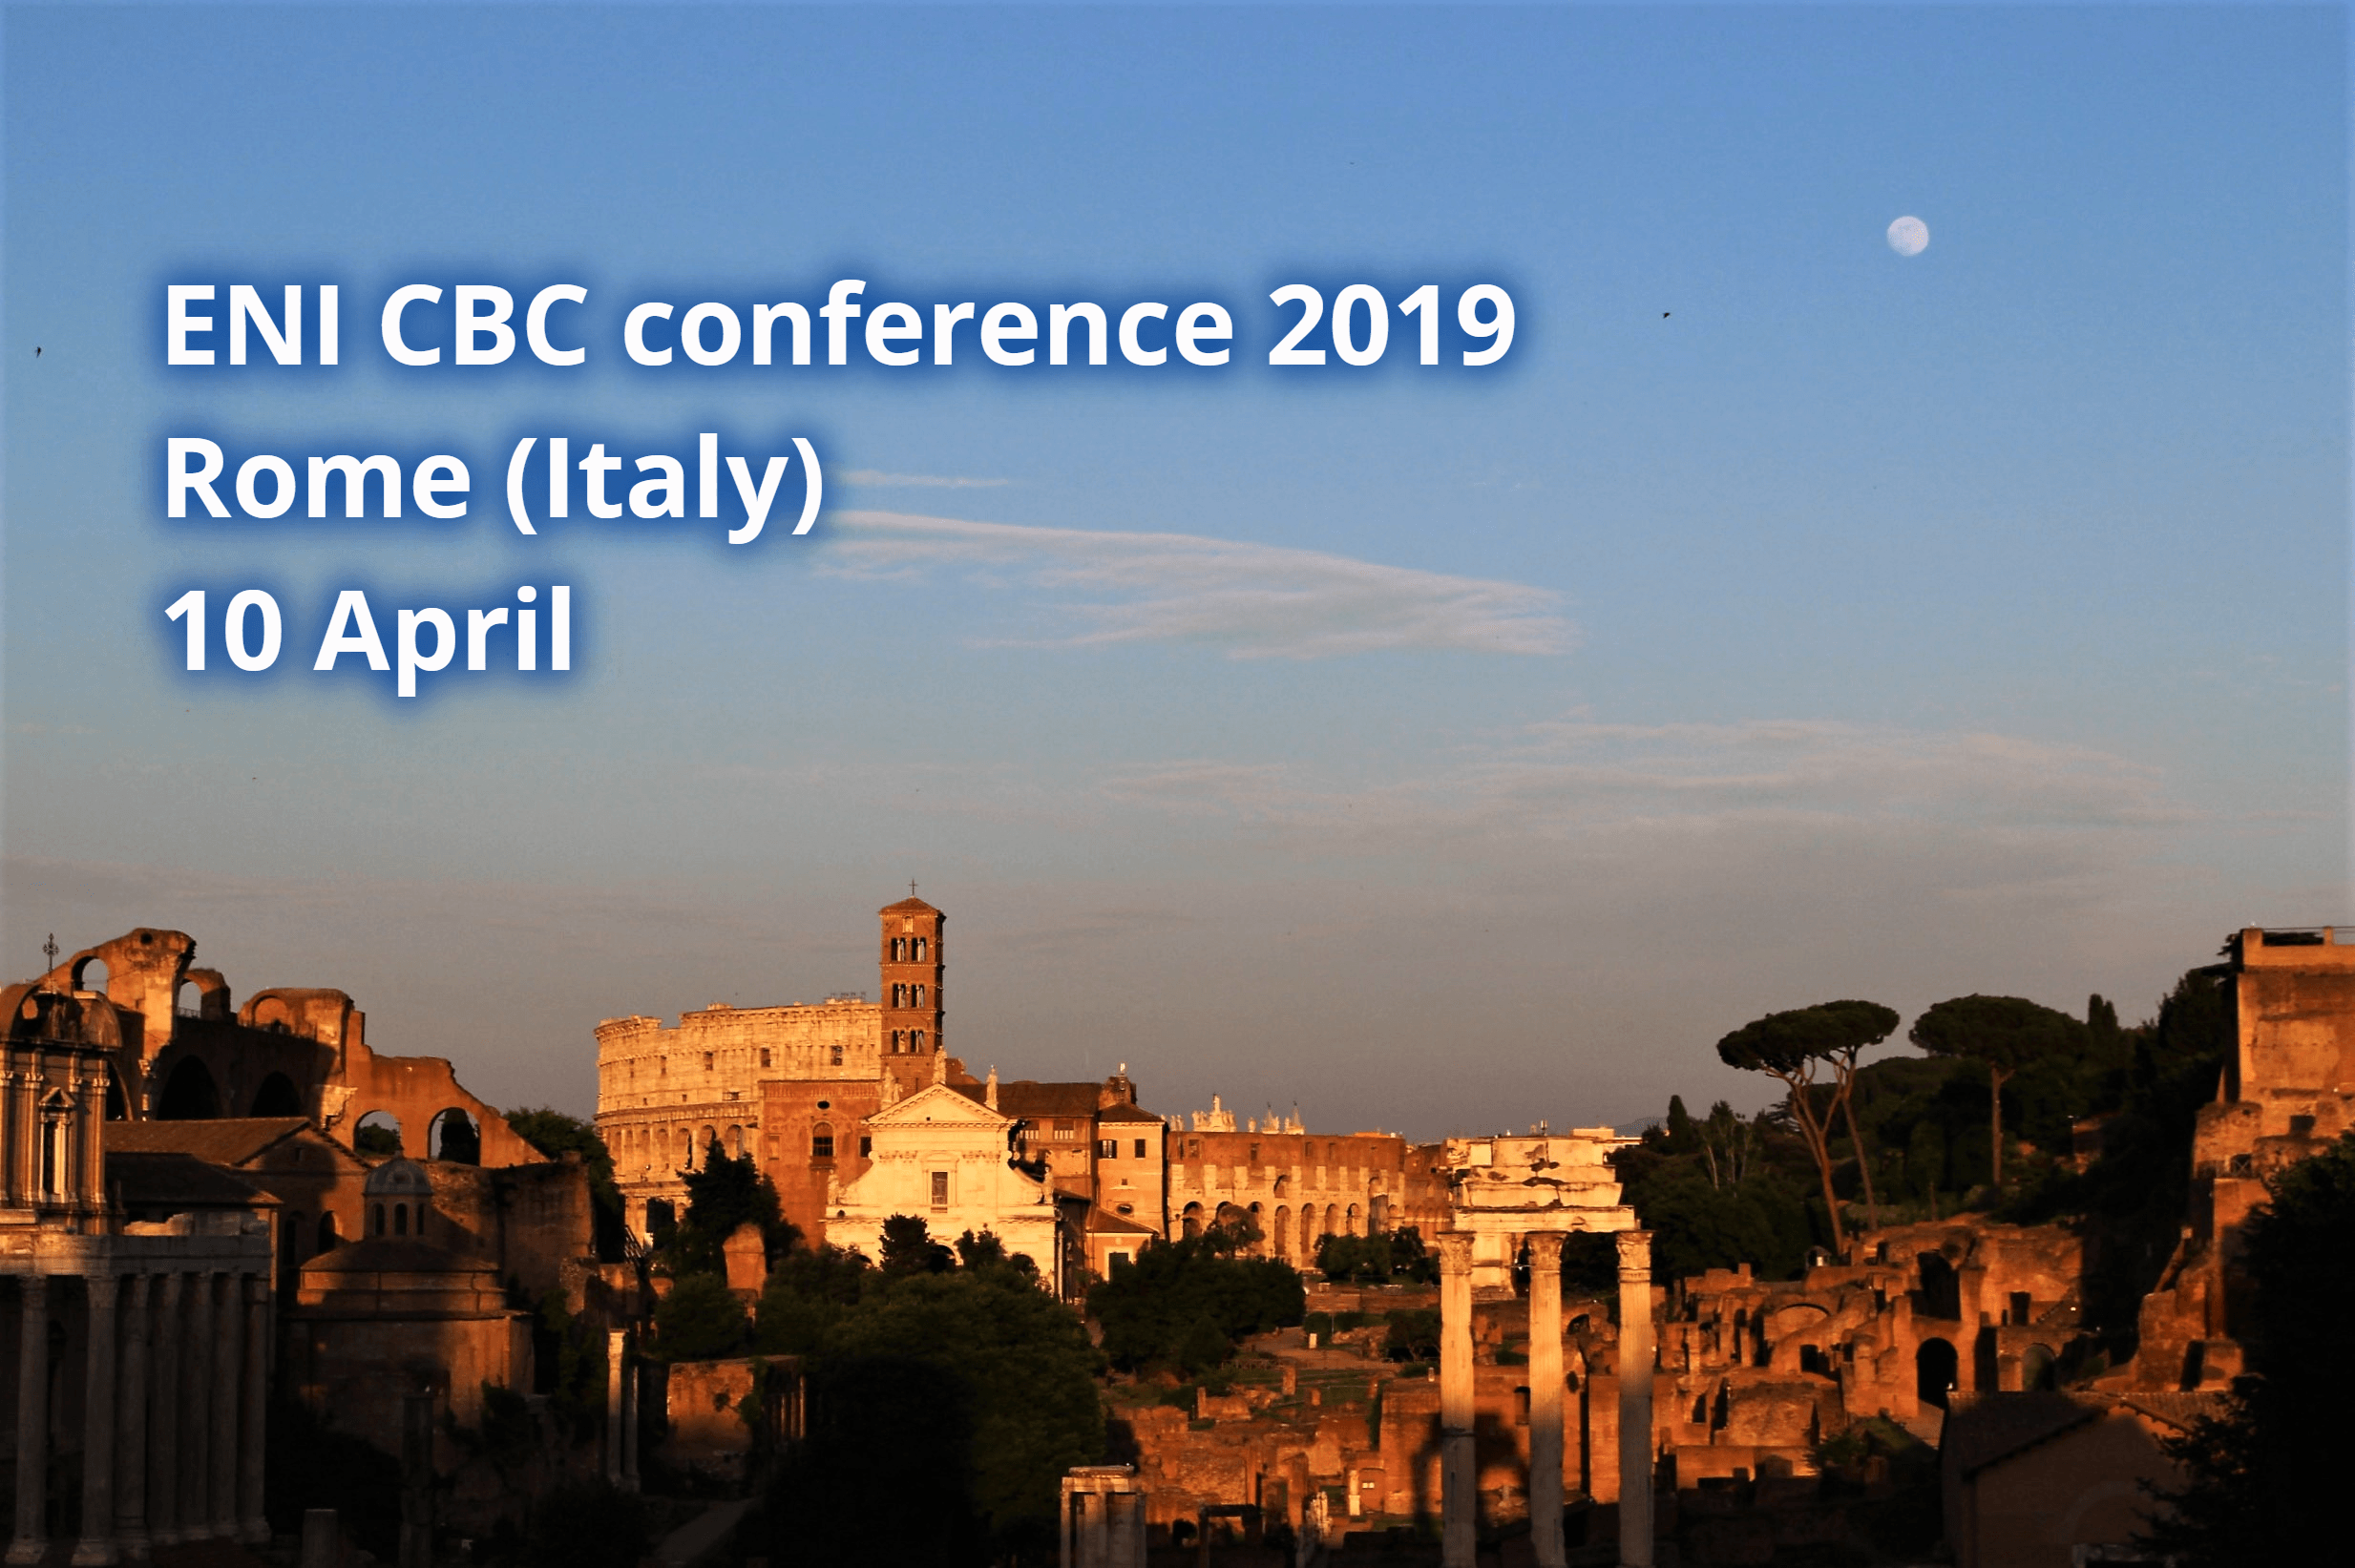 ENI CBC annual conference 2019 - Present and future of cross-border cooperation along the EU's external borders